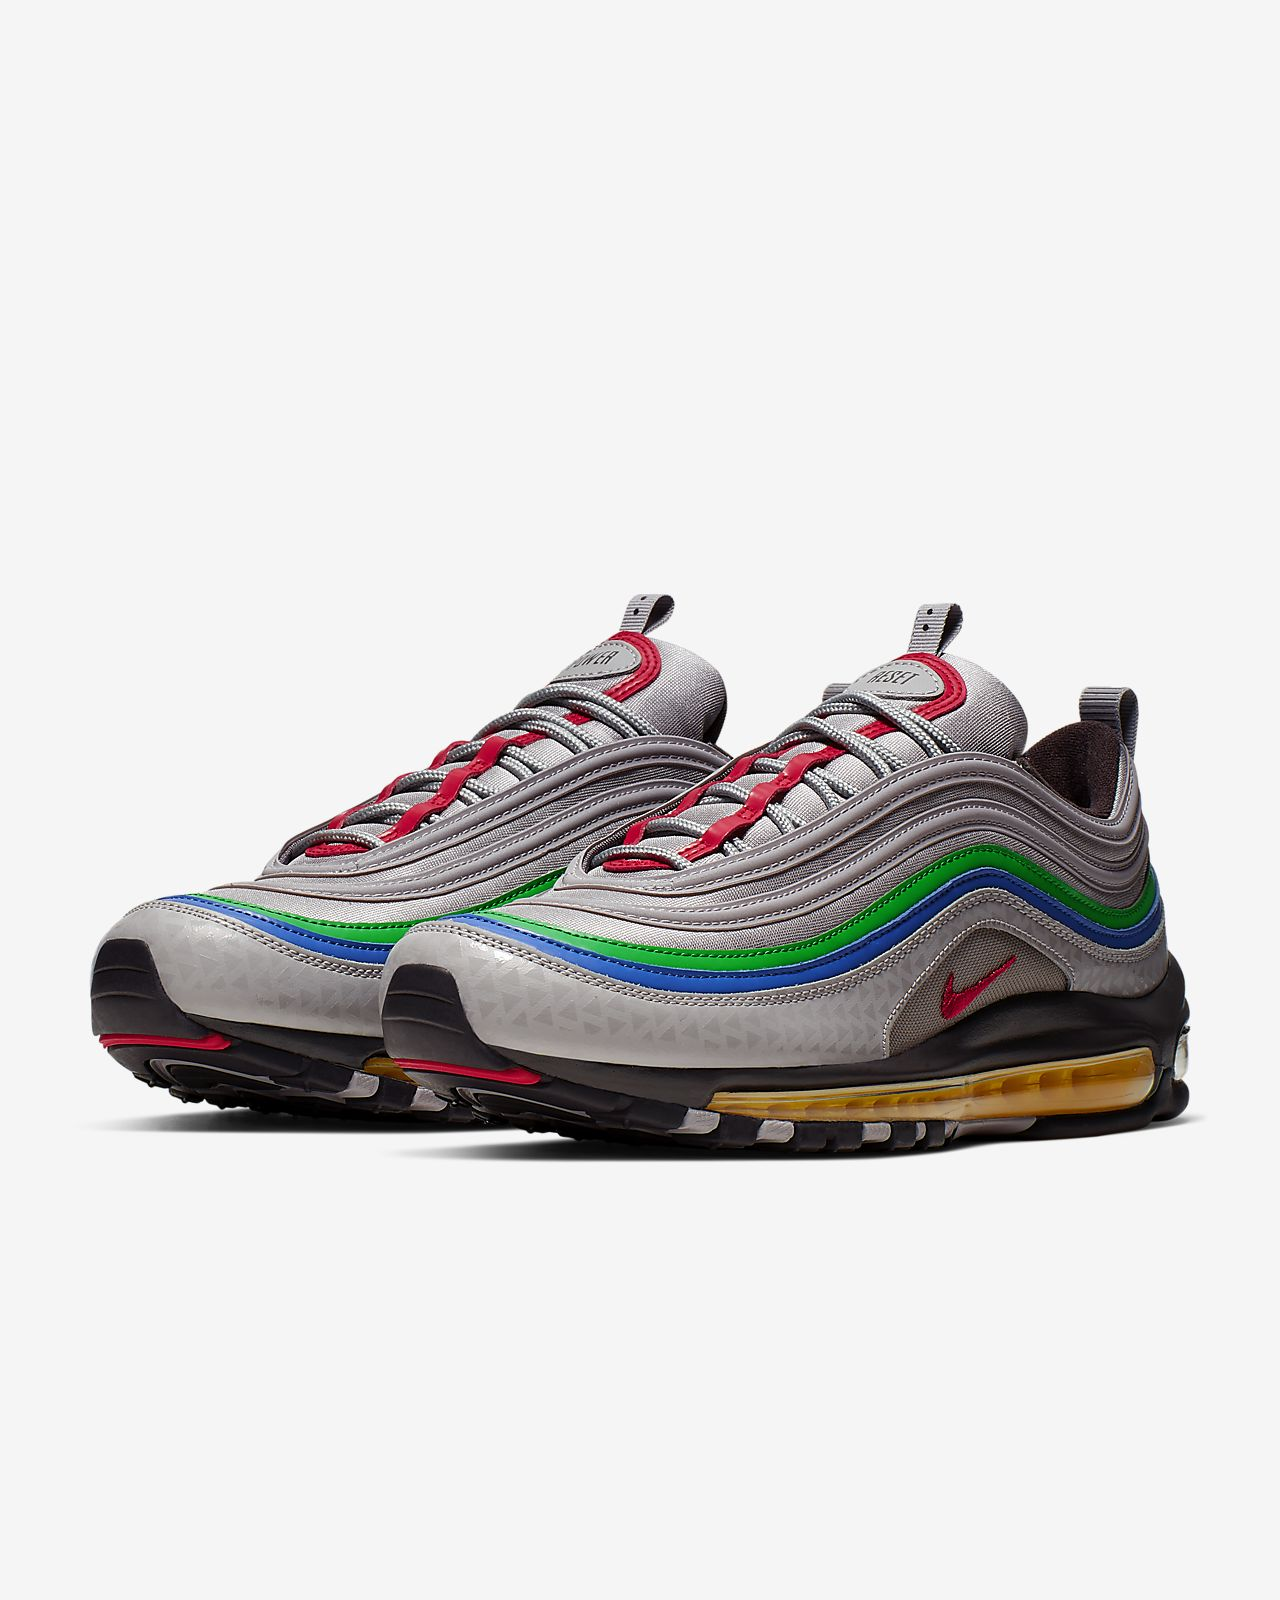 nike 97 chaussure femme